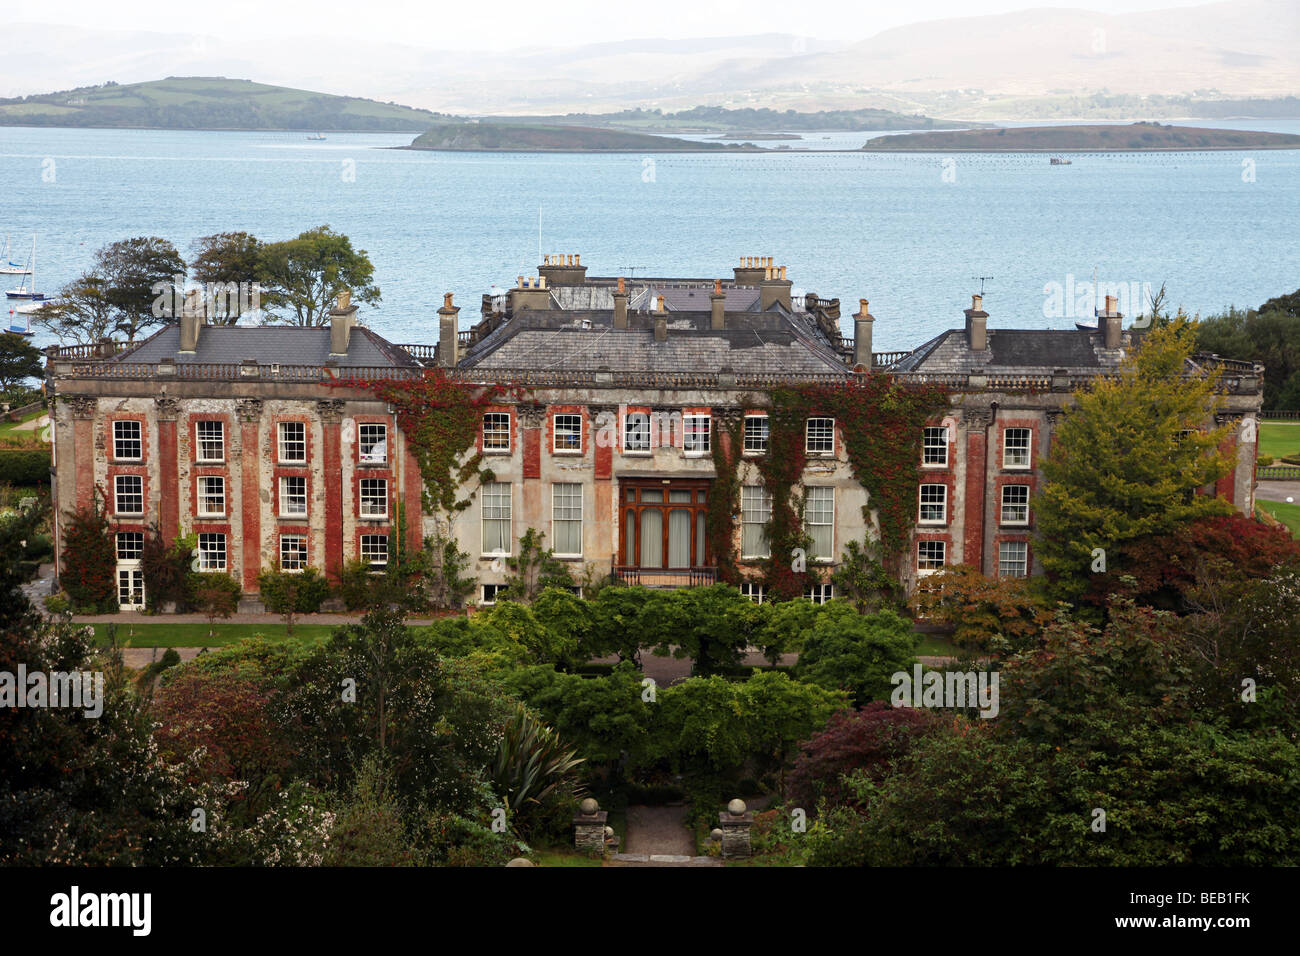 Bantry House, Irish stately home, Bantry Bay, West Cork, Ireland - Stock Image